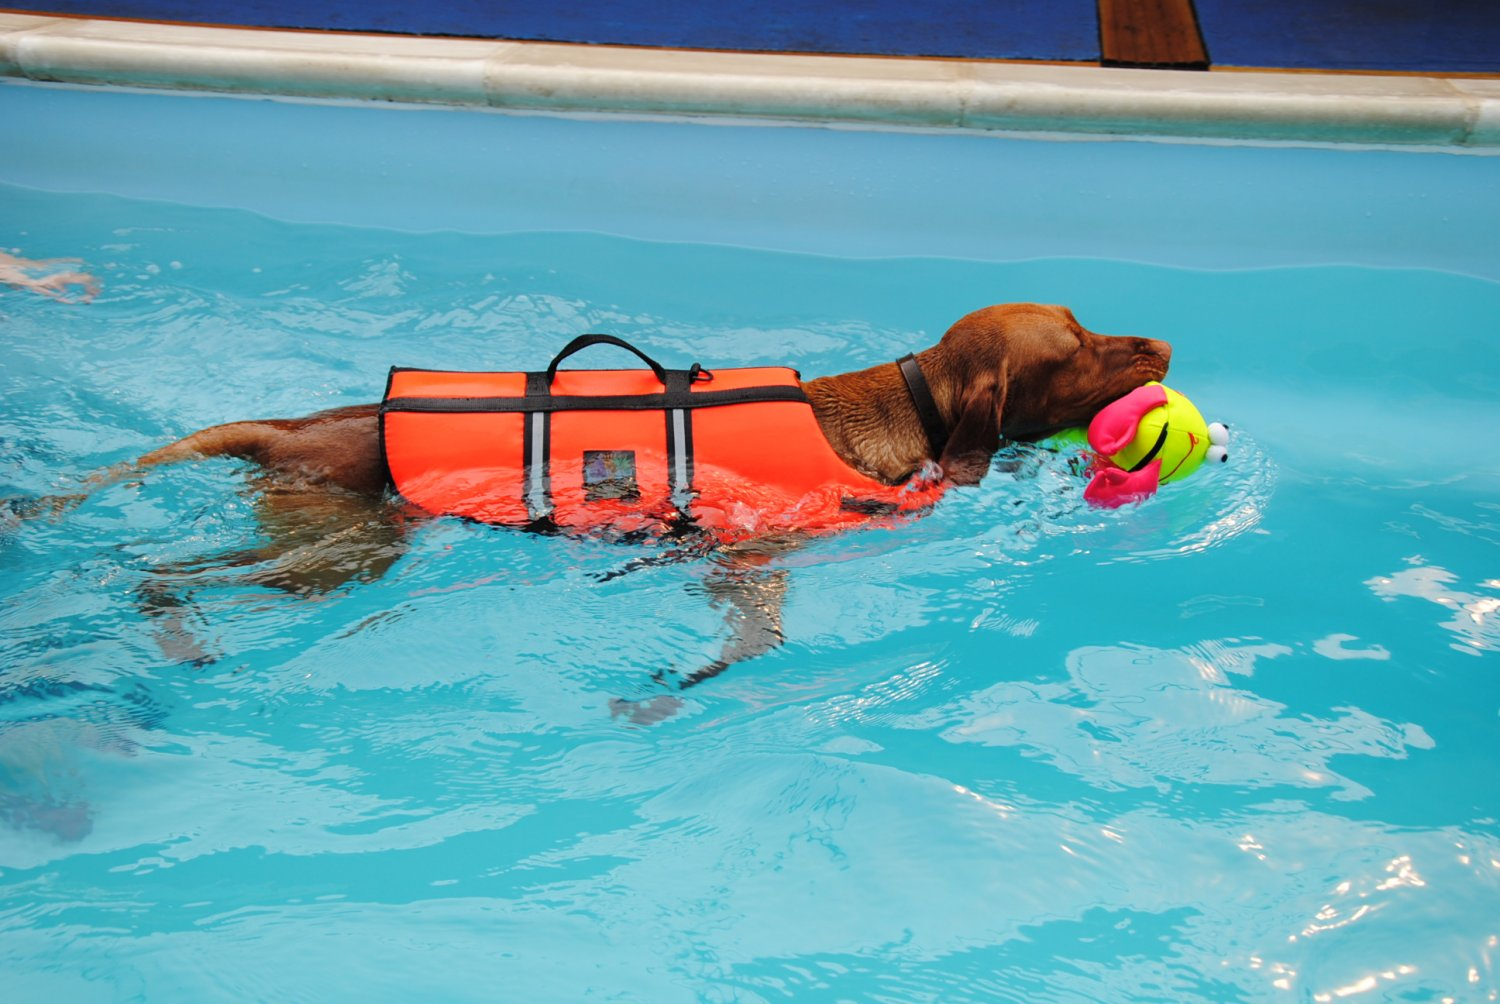 Come insegnare al cane a nuotare for How to train your dog to swim in the pool